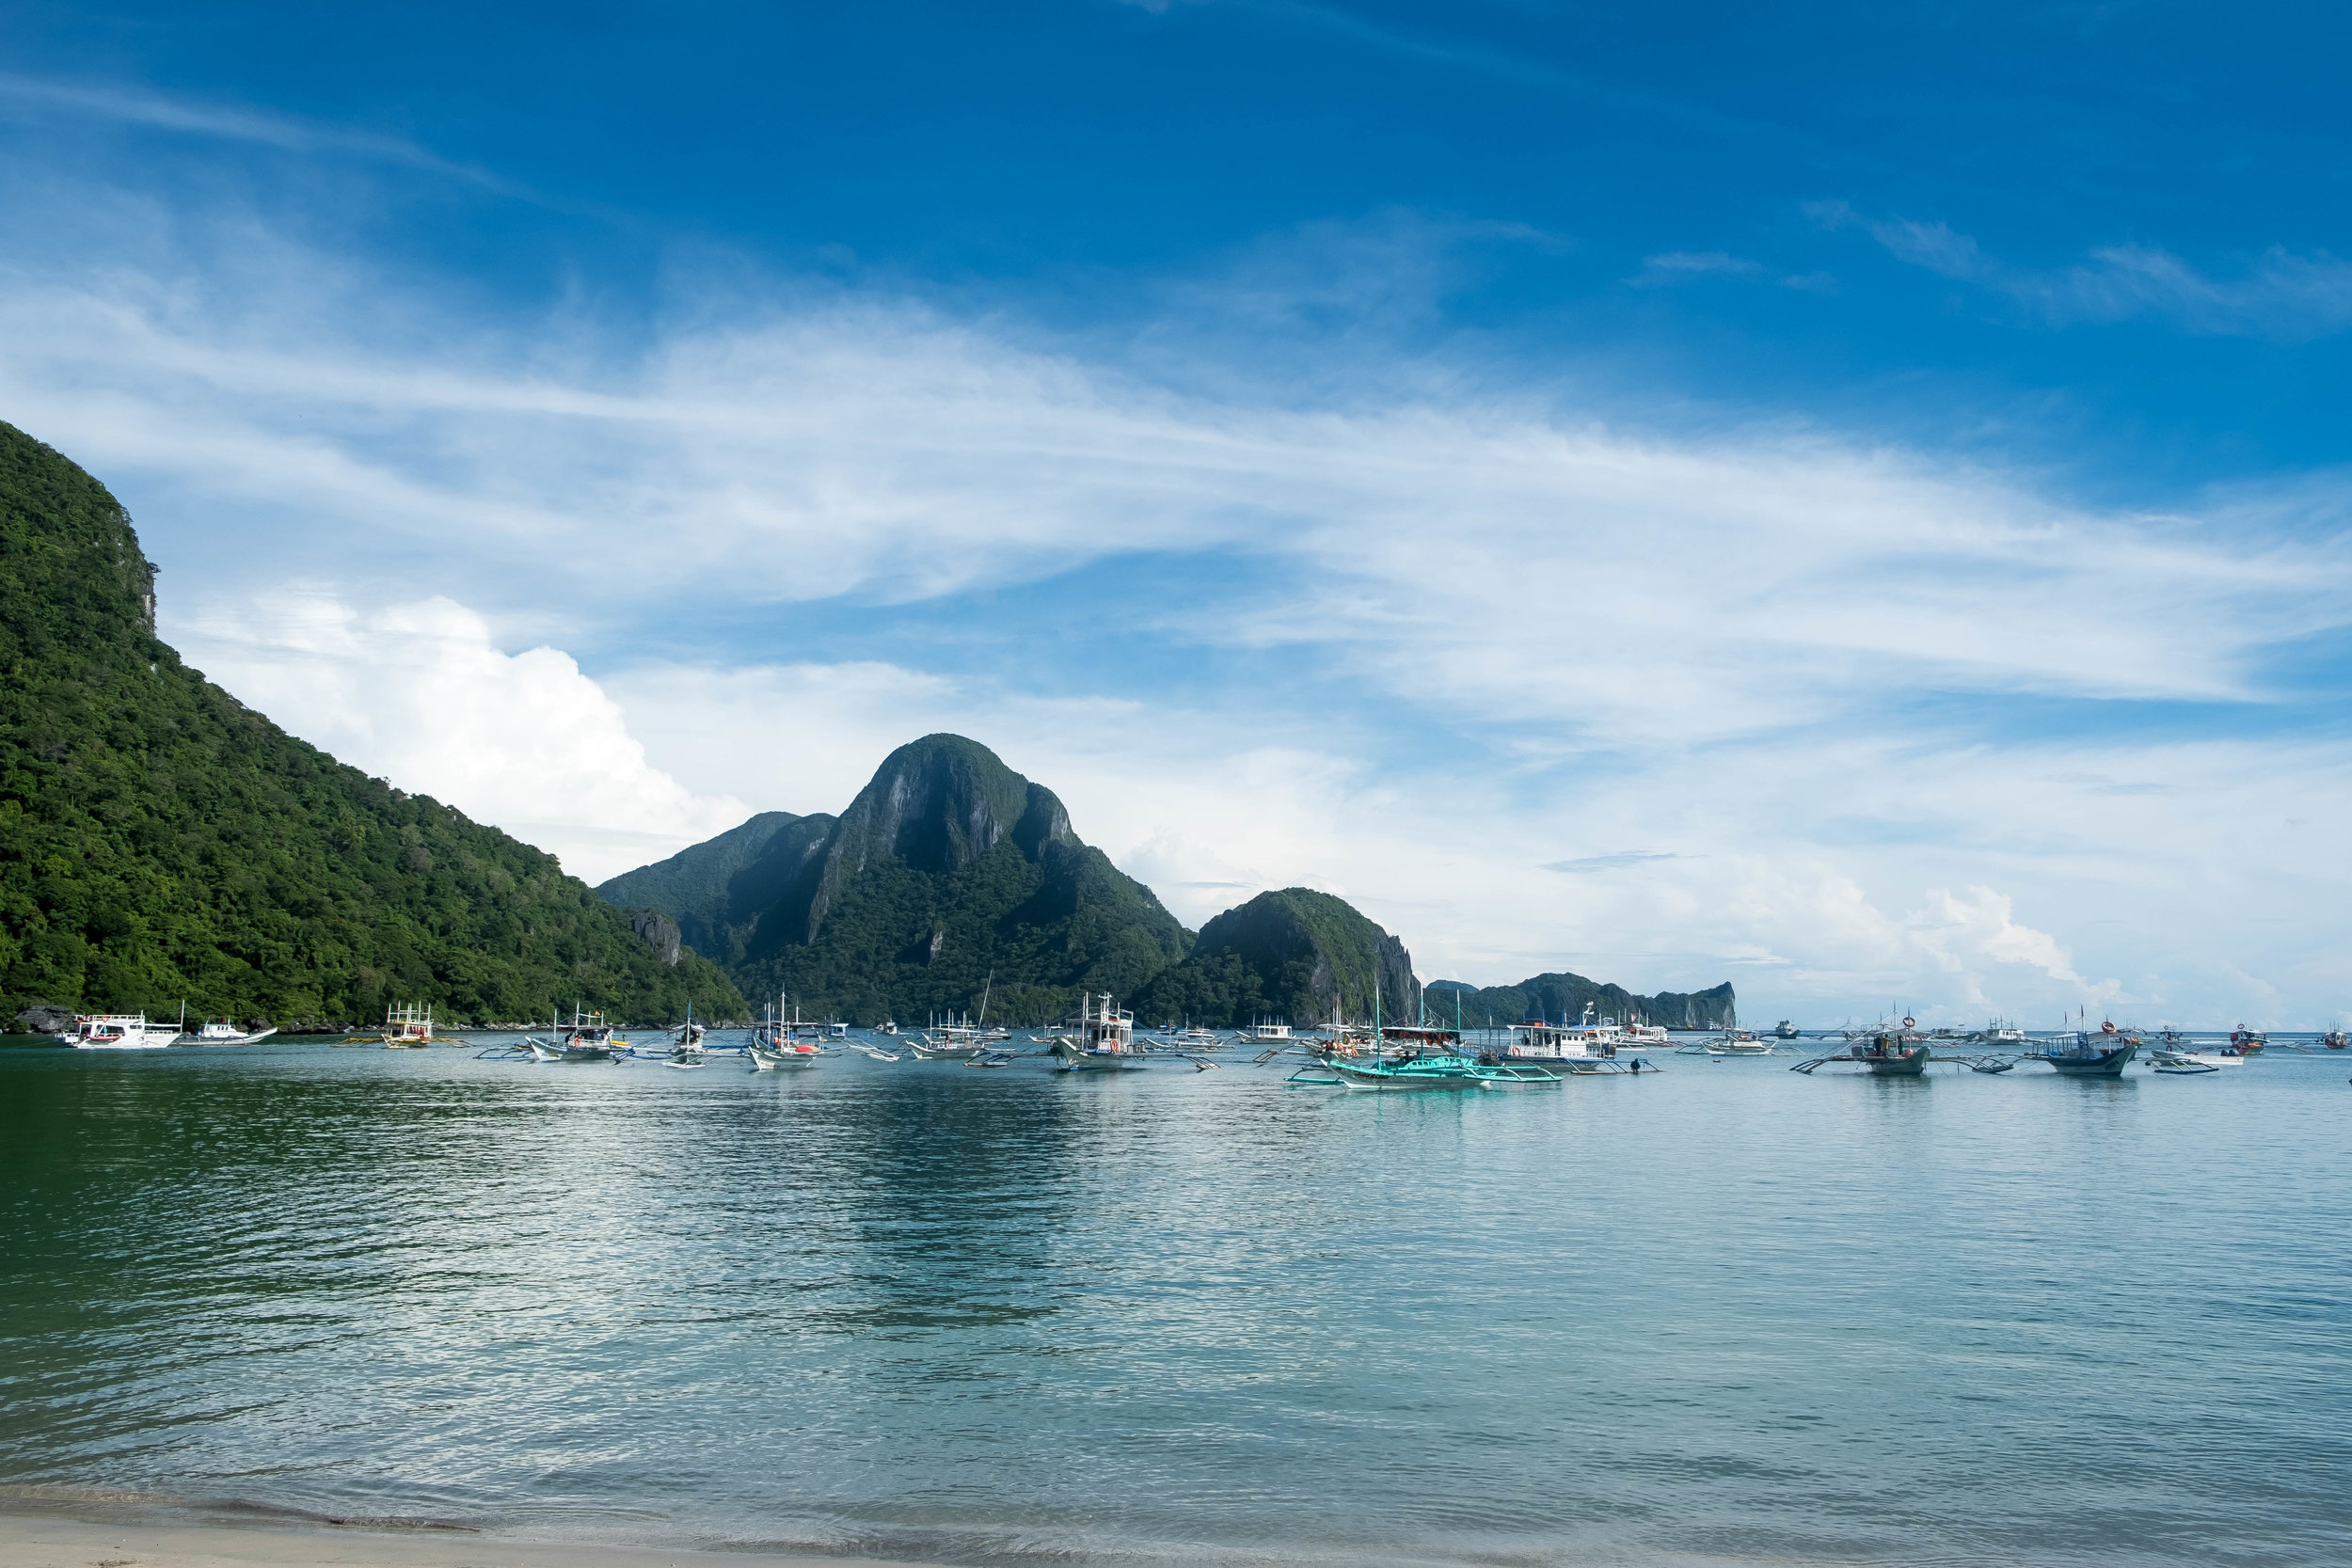 View from the beach in El Nido